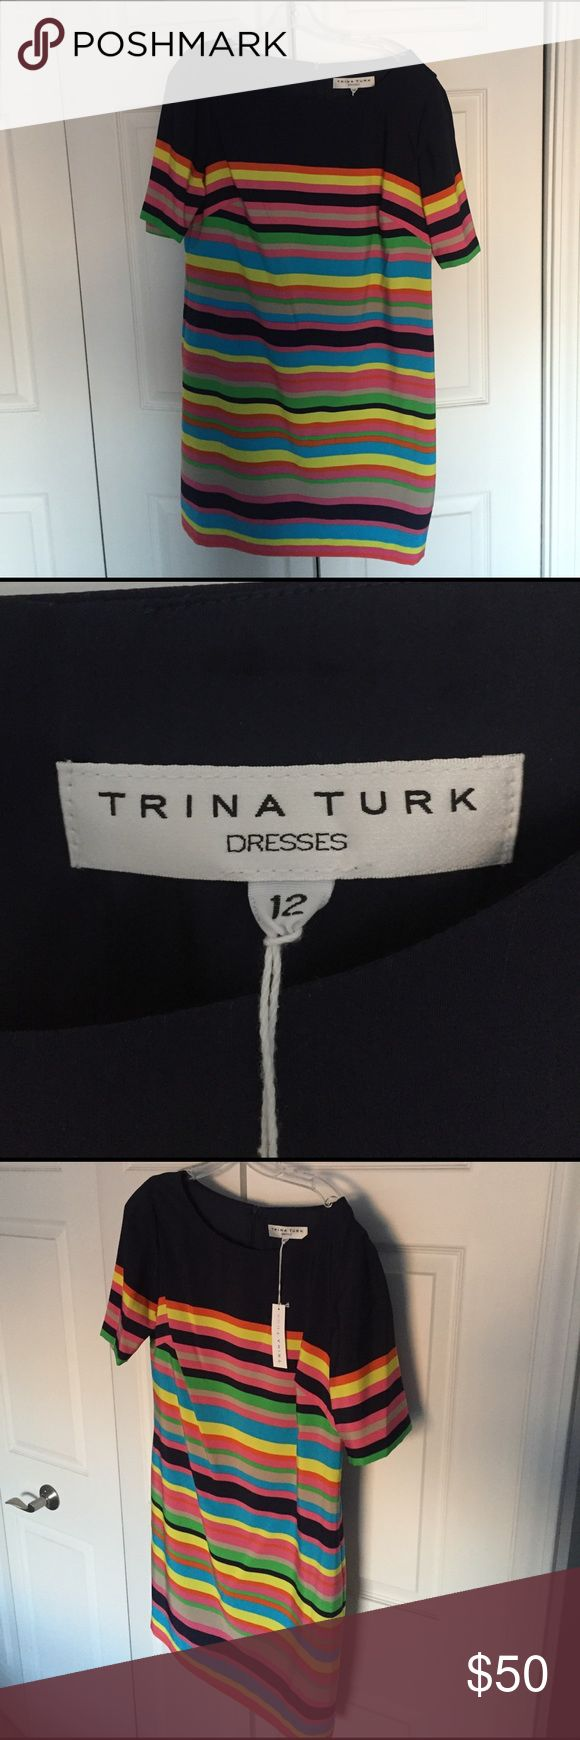 Trina Turk Dress Never been worn. Great dress for an upcoming vacation and the summer! Zipper in the back. Fits like a shift dress. Trina Turk Dresses Mini